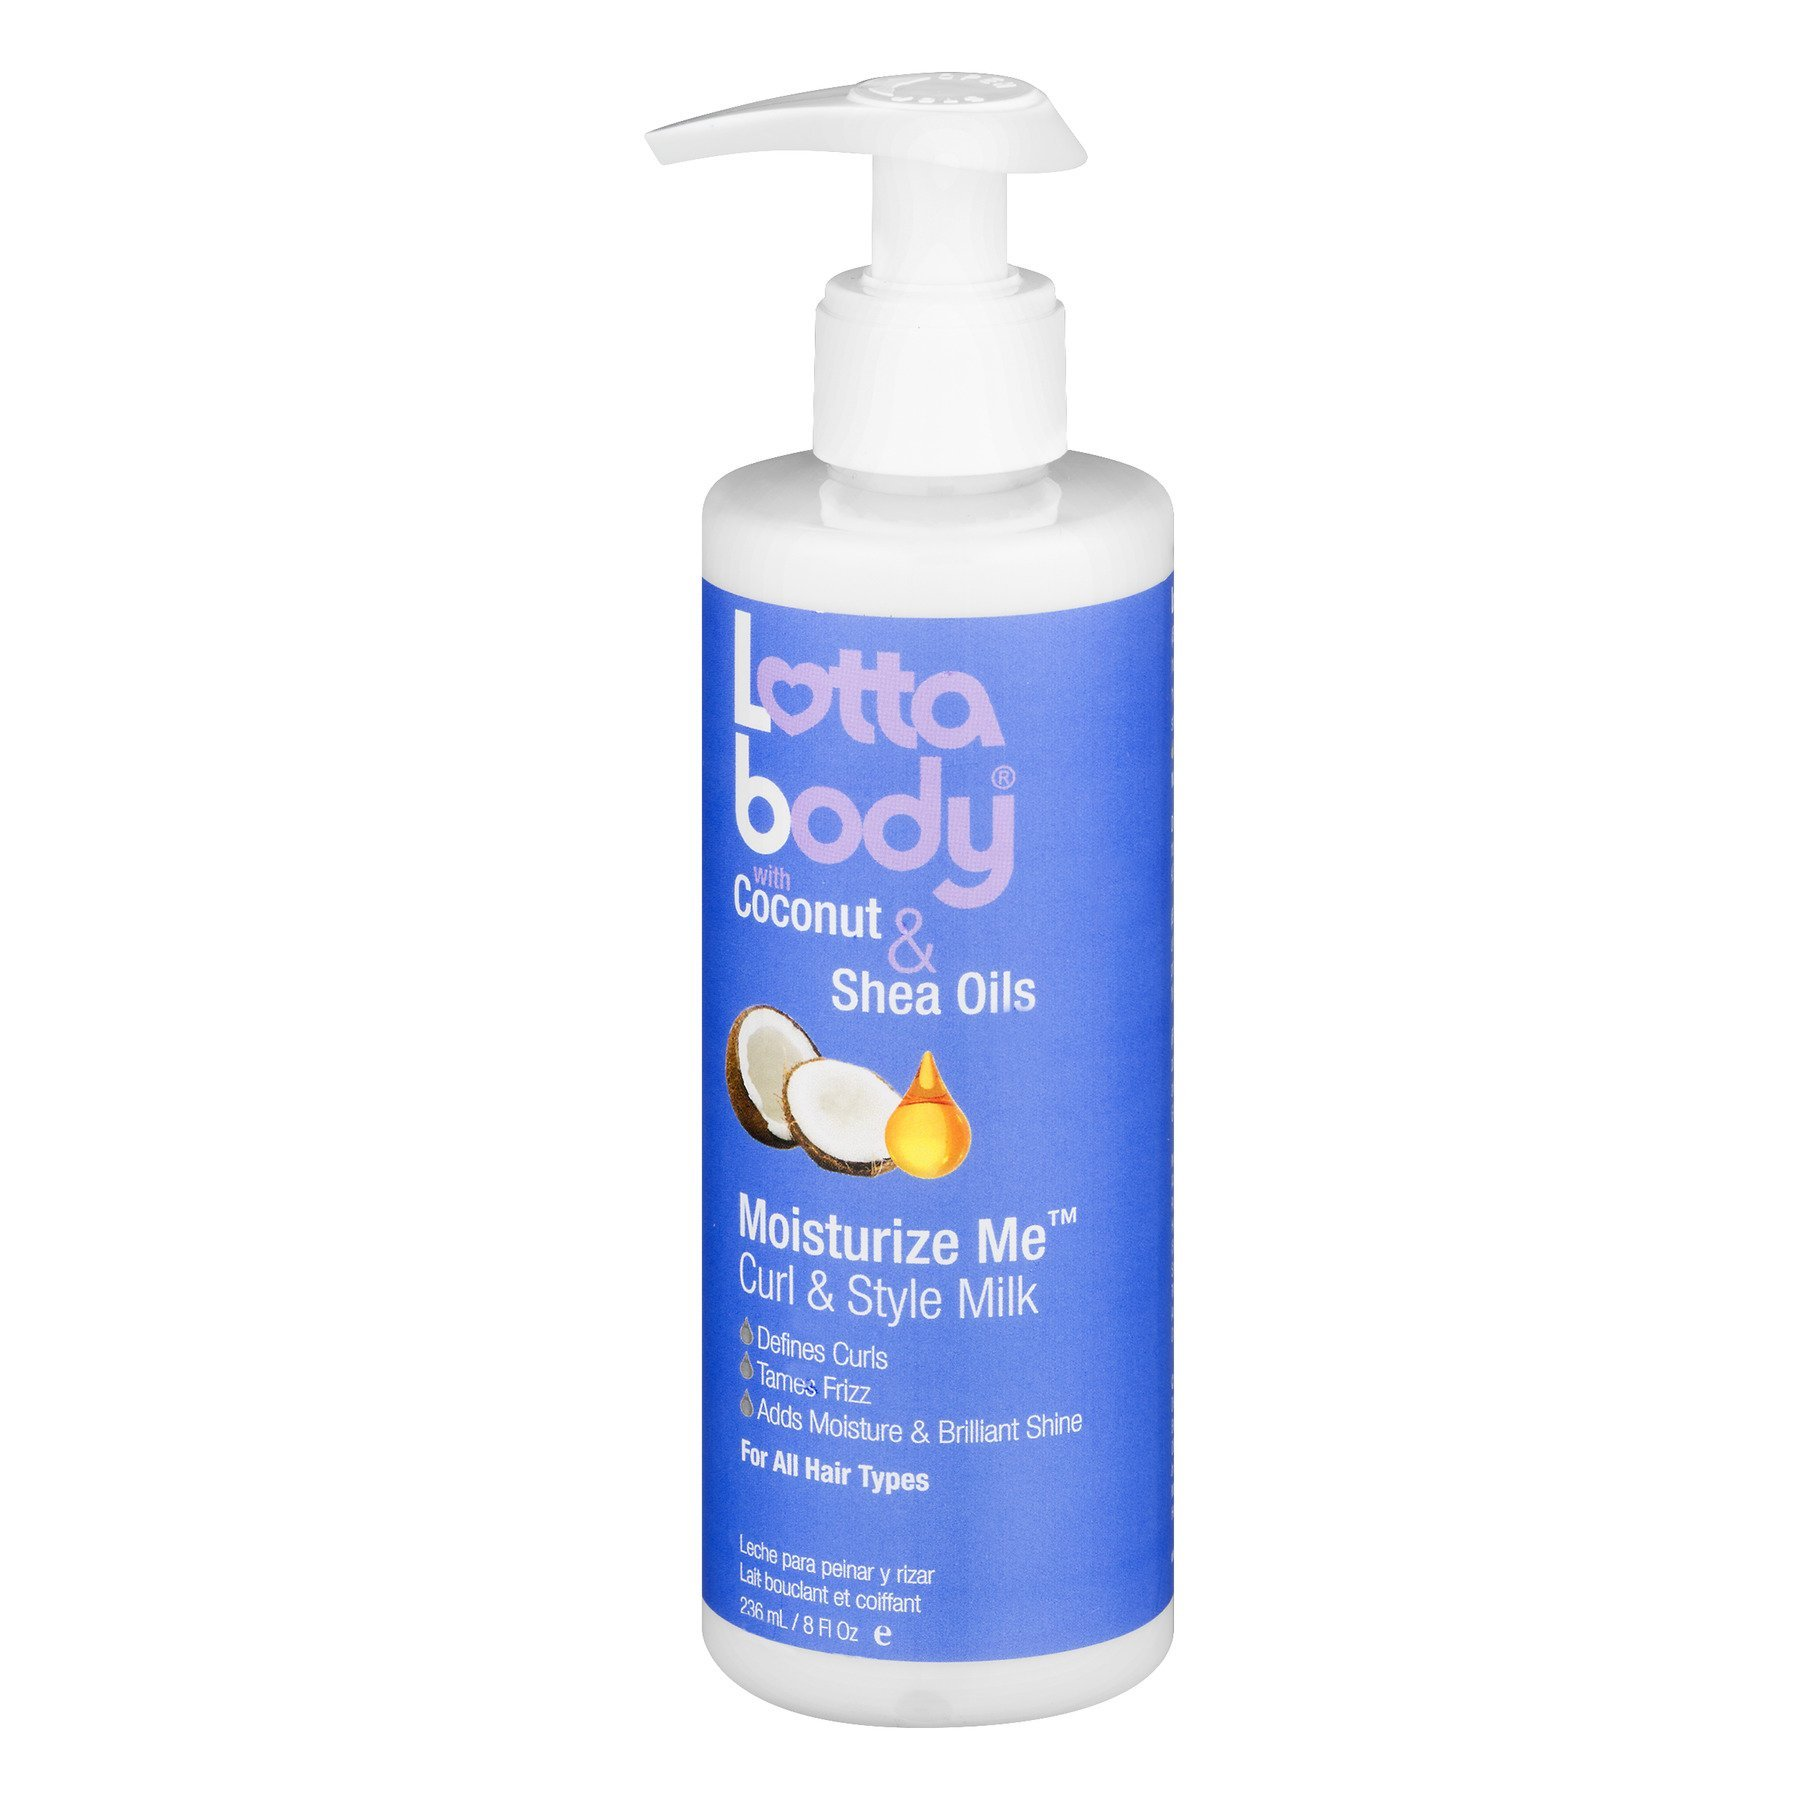 Lotta Body Coconut and Shea Oils Moisturize Me Curl and Style Milk, 8 Ounce